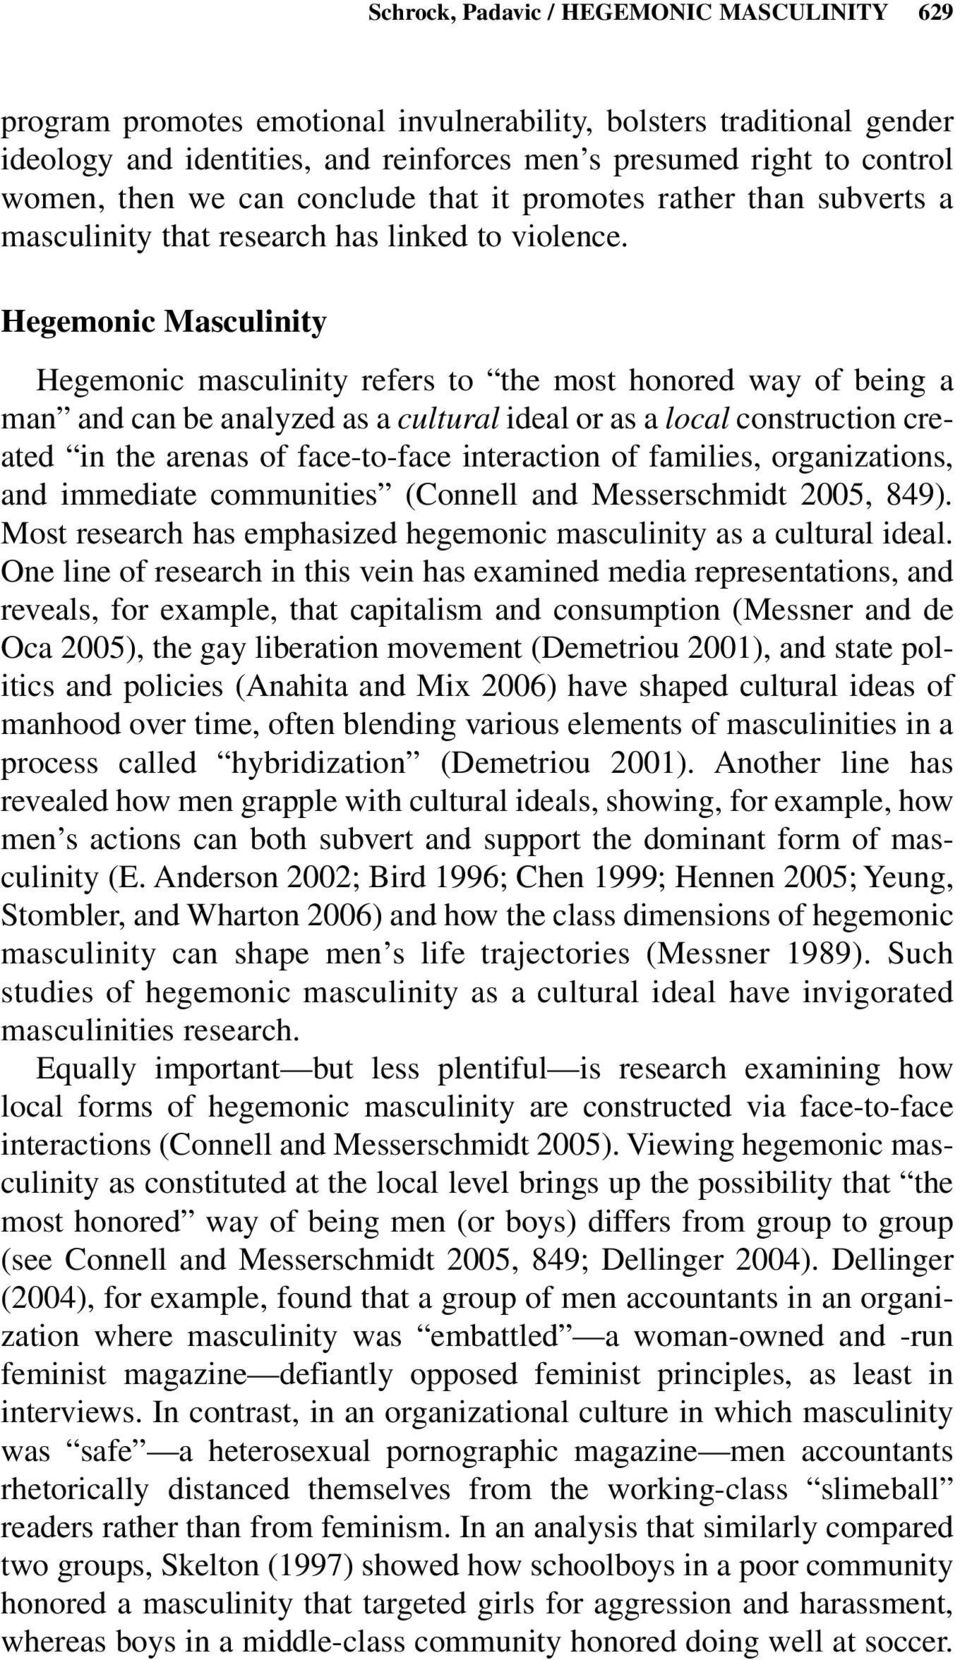 connell hegemonic masculinity Hegemonic masculinity sits atop the gendered social hierarchy by embodying the culturally idealized definition of masculinity, which is constructed as both oppositional and superior to femininity rw connell's concept of hegemonic masculinity sprung from her work with gender and class differences in australian schools.